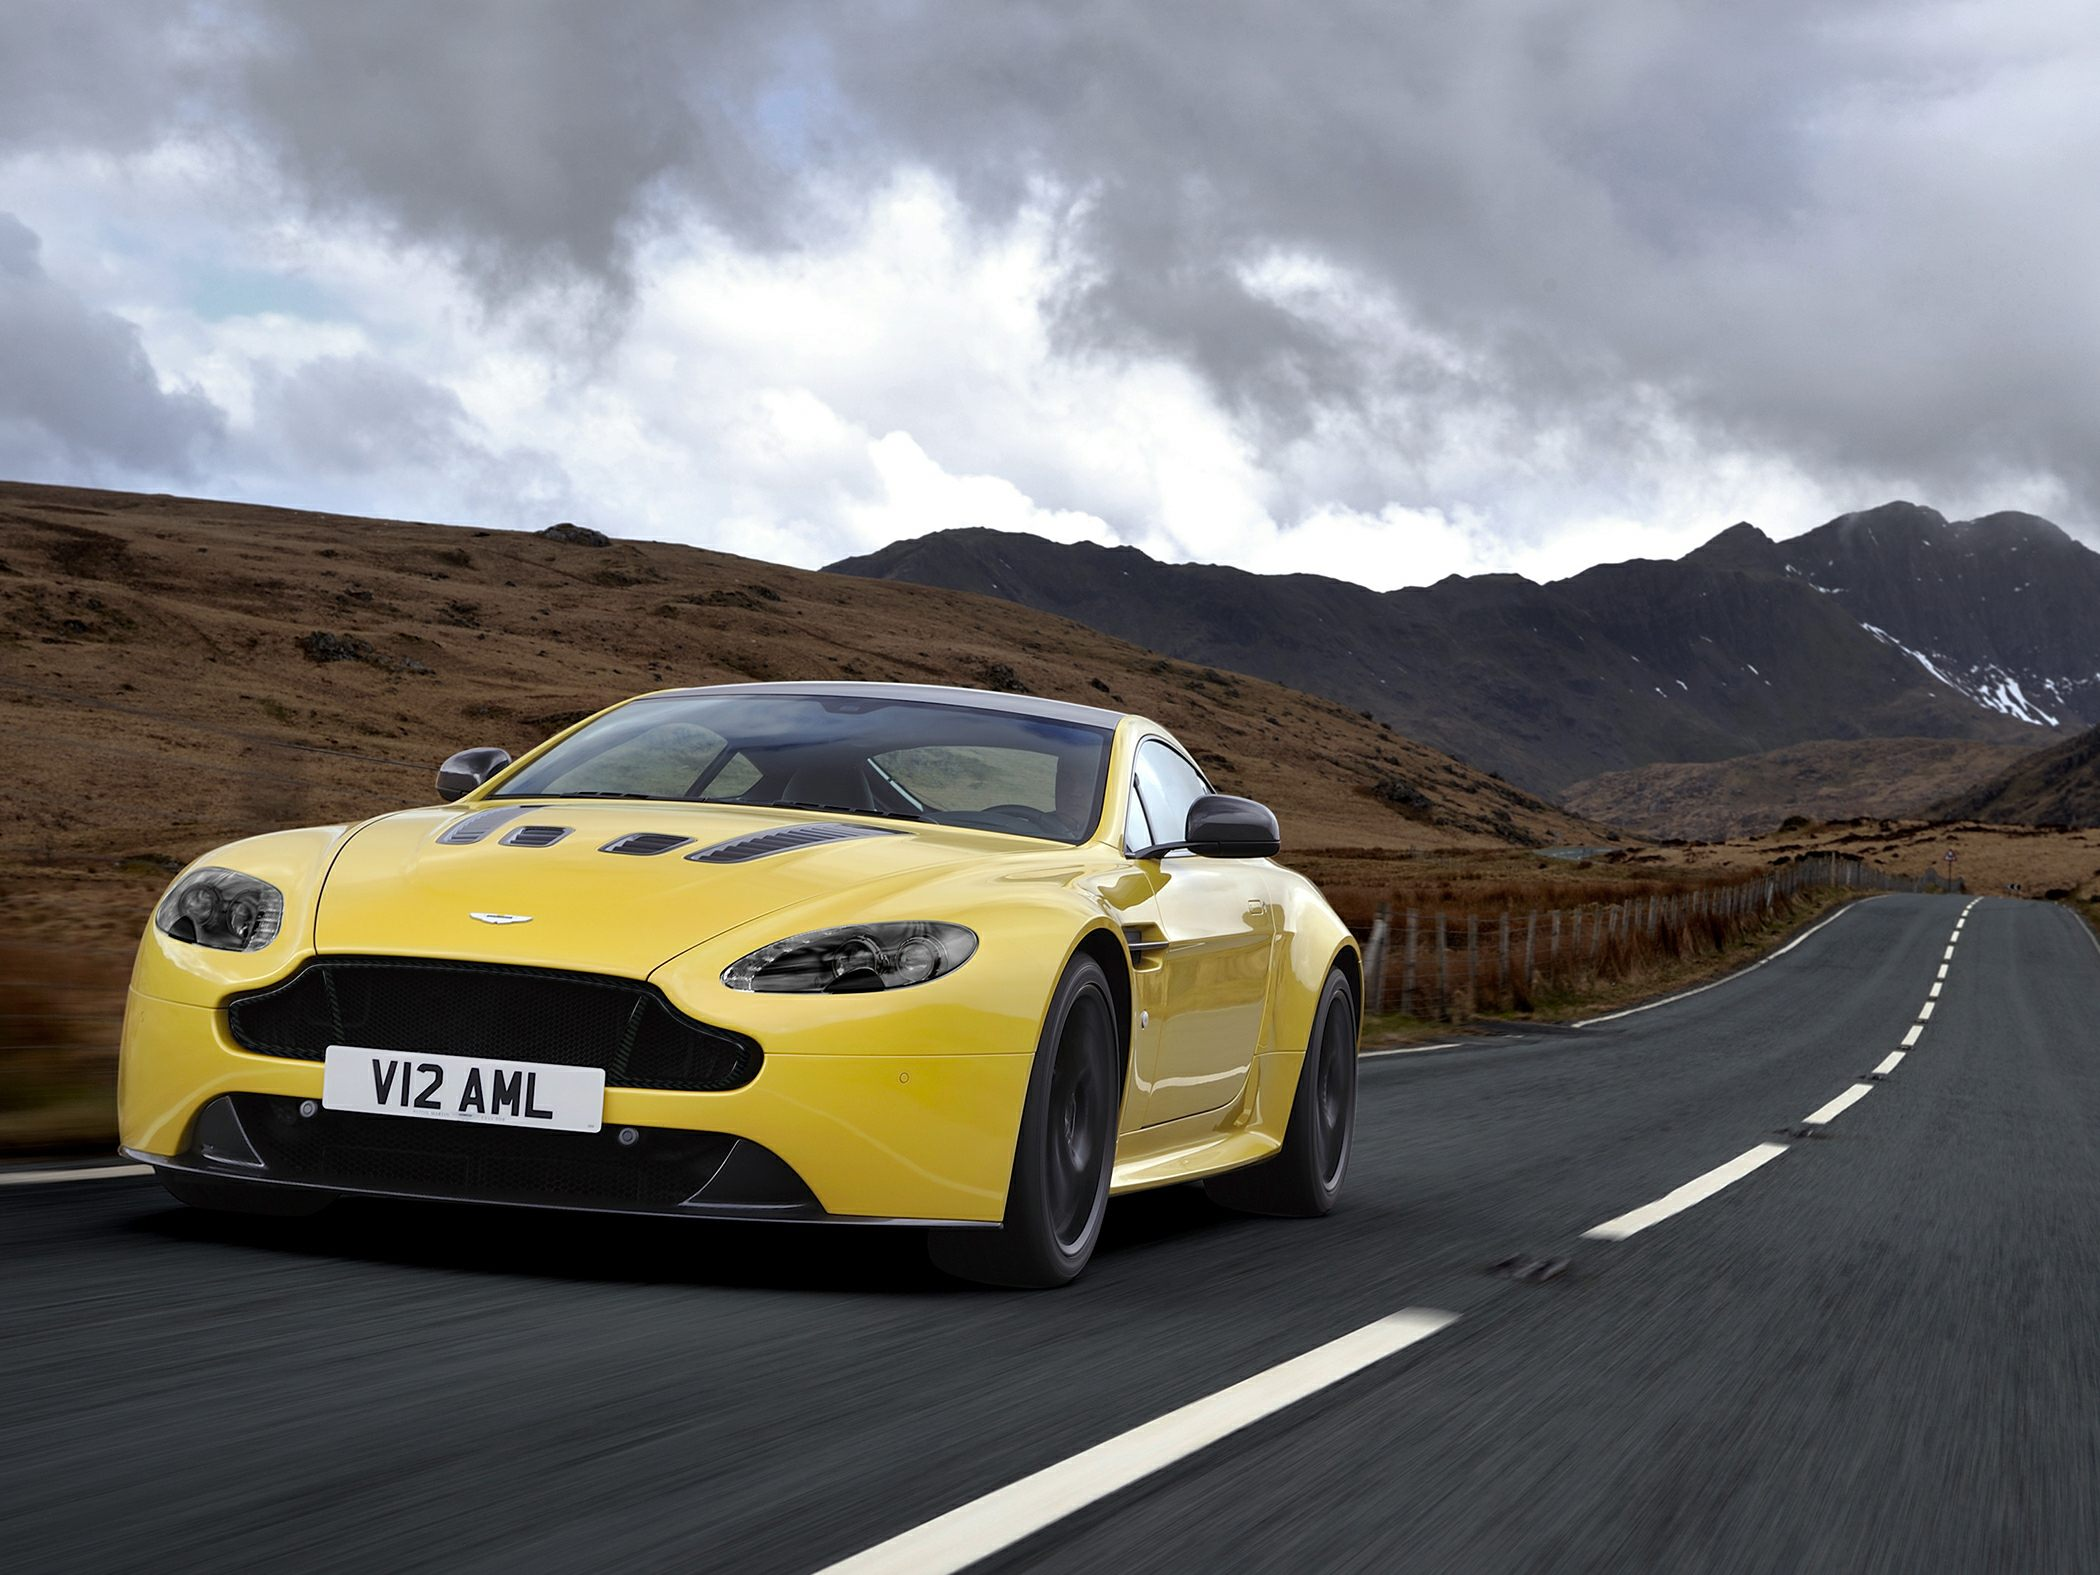 2017 Aston Martin V12 Vantage S Base 2dr Coupe Review Autoblog